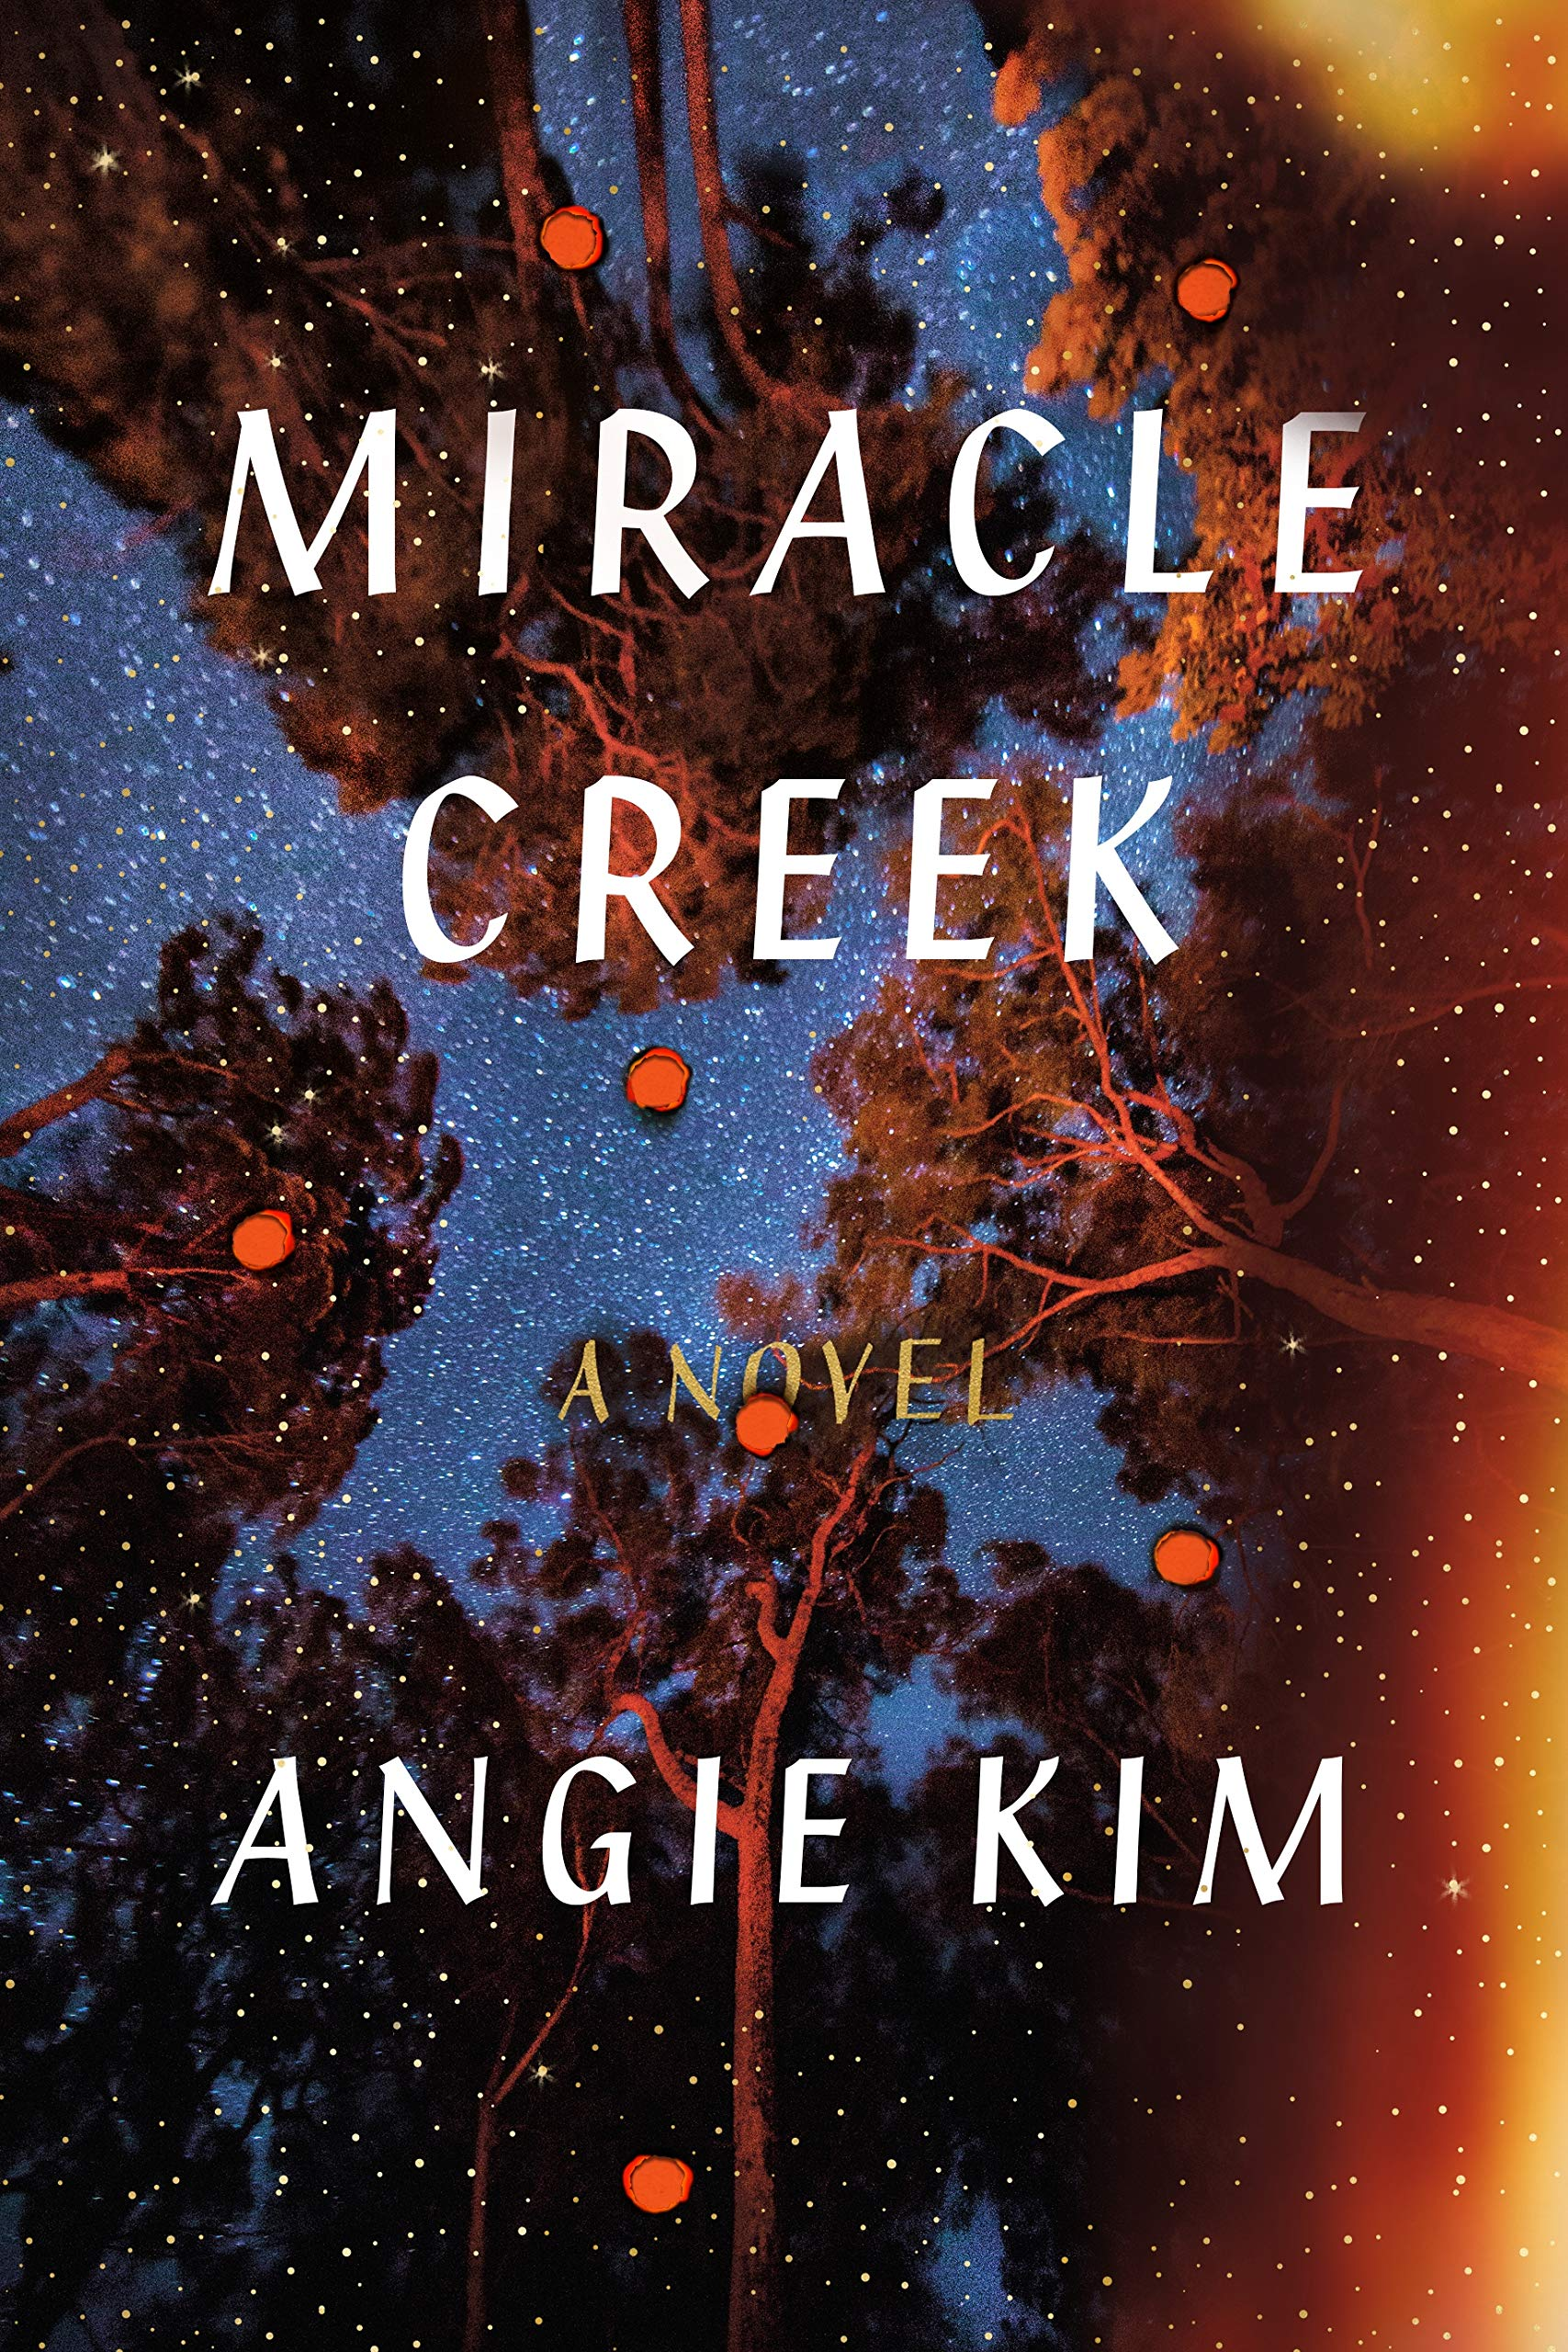 Book cover of miracle creek. View of the sky and surrounding trees, fire is creeping up from the edge.